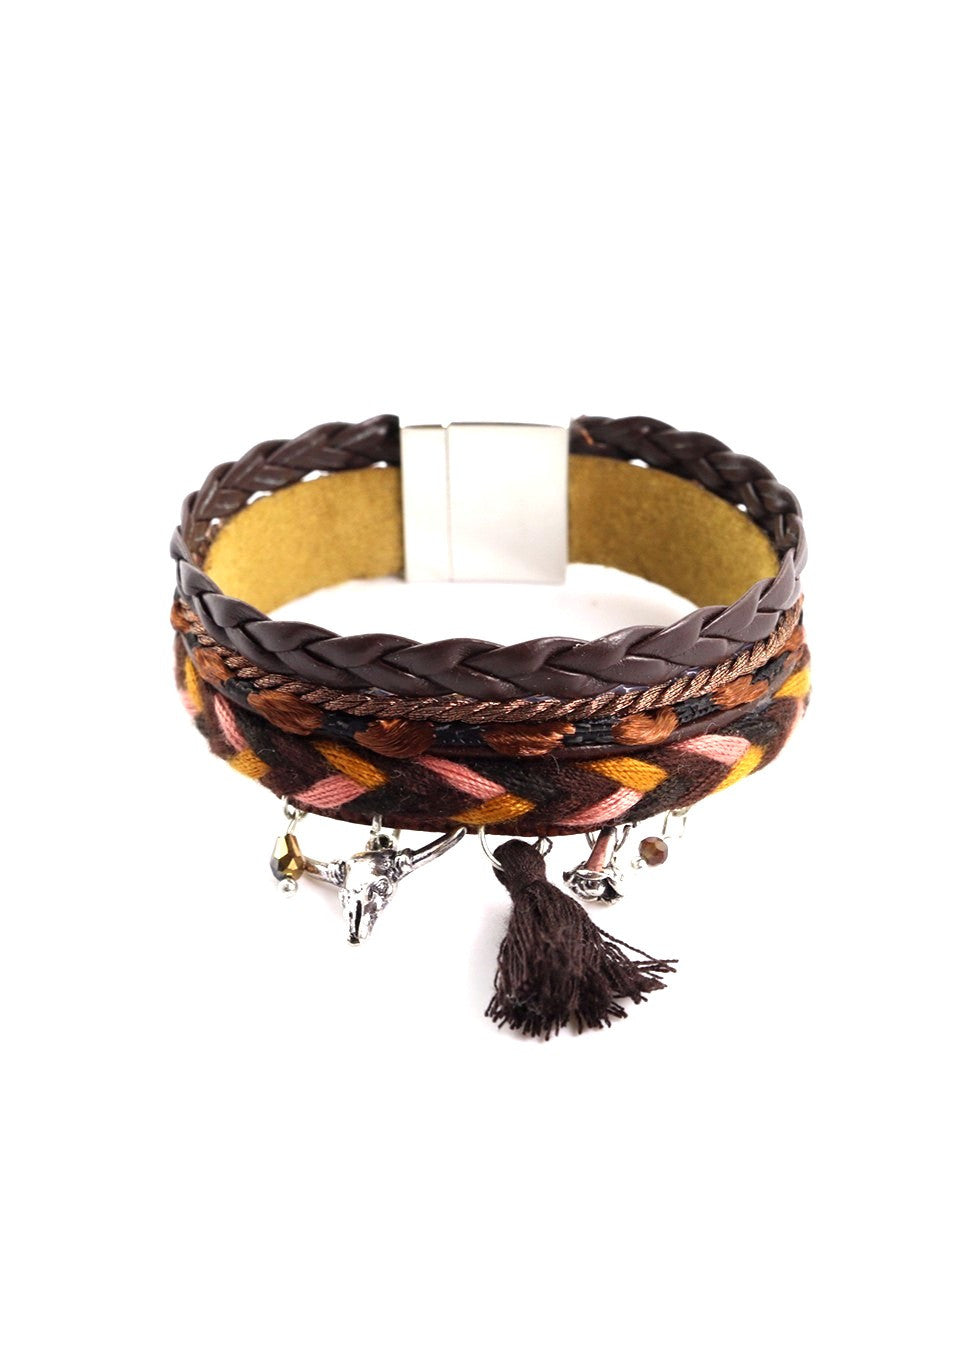 KATYA - Woven Leather Bracelet